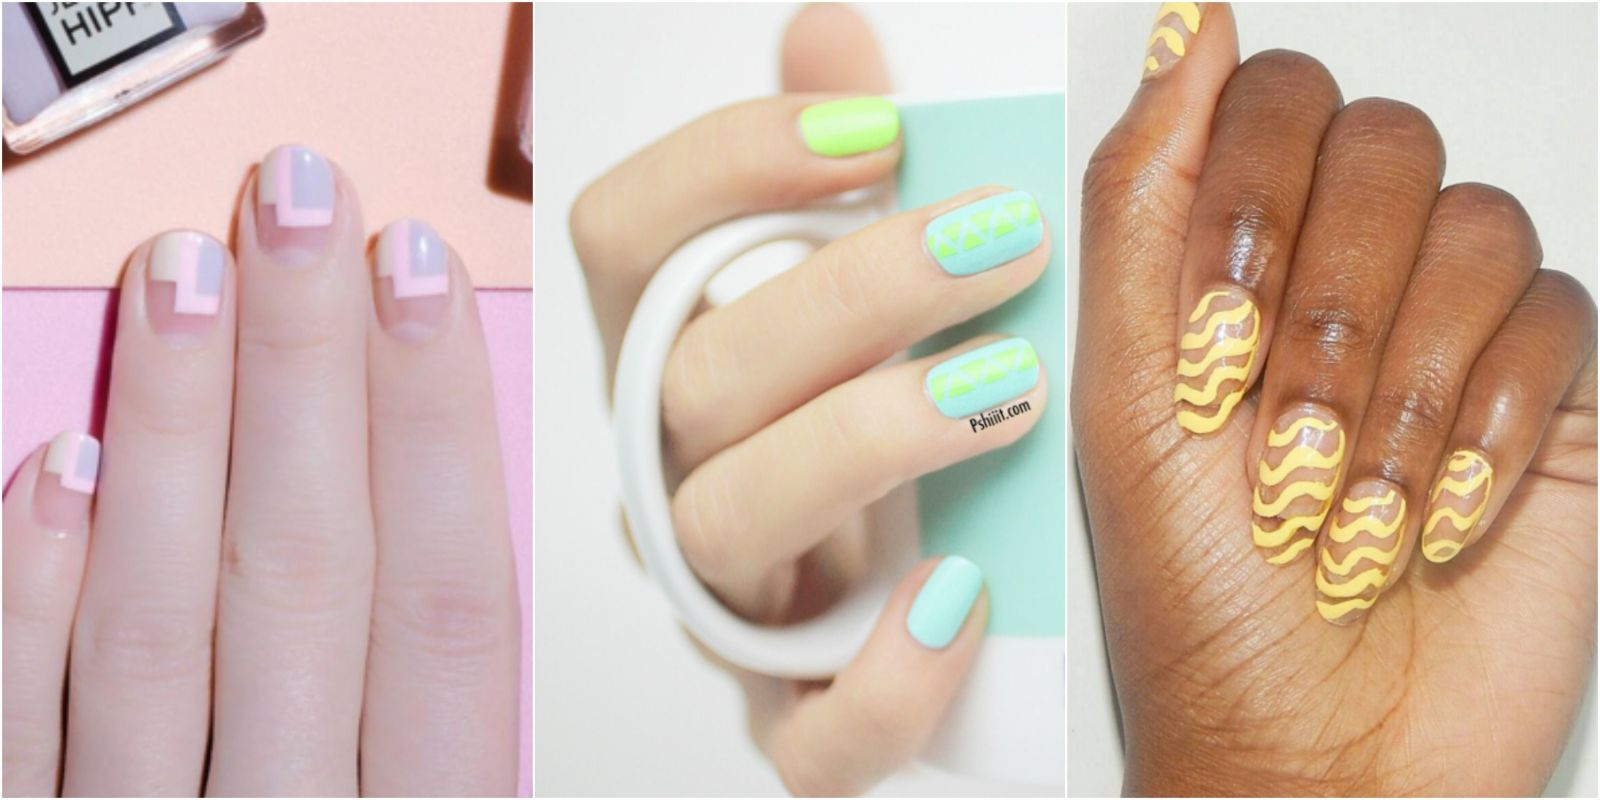 Nails Design Ideas Laque Nail Full Set Matte Discover And Share